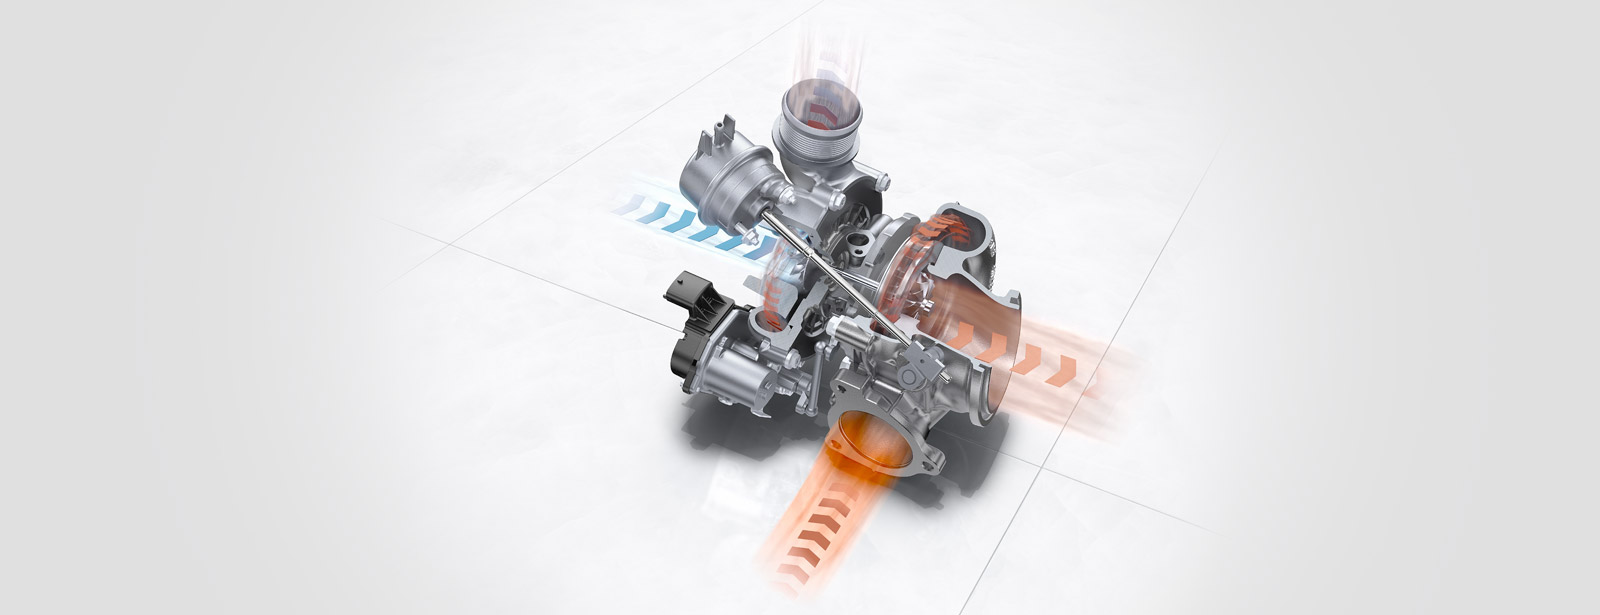 Porsche engine 718 - flat-4 - Variable turbine geometry